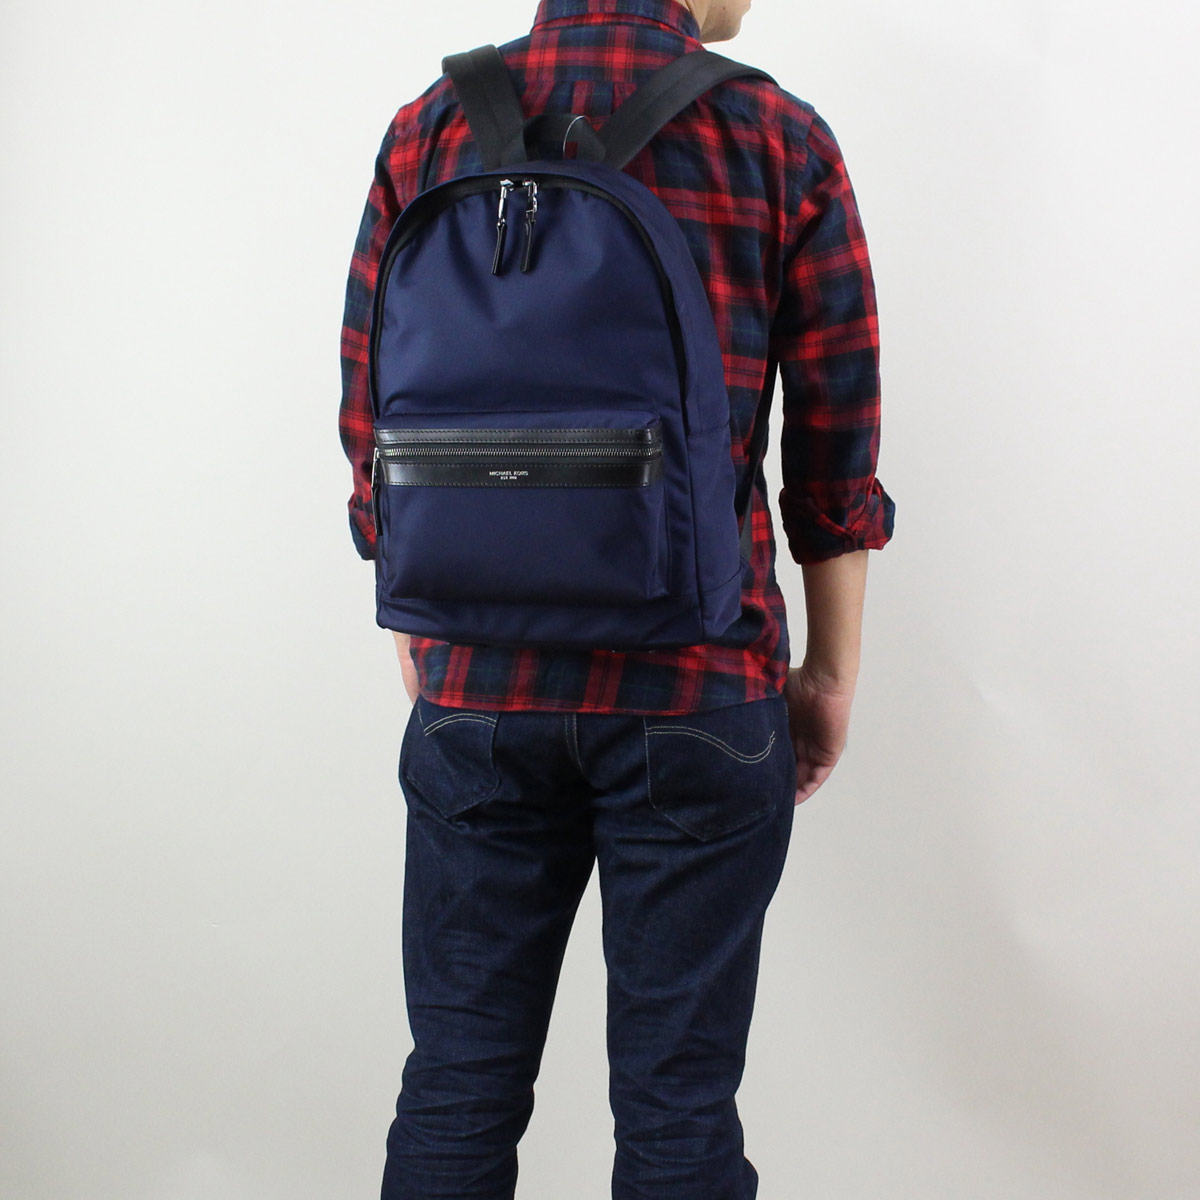 a5287c728dbe06 A men's lady's all-around backpack available together! A casual design  using lightweight nylon. The functionality is outstanding with  large-capacity storage ...